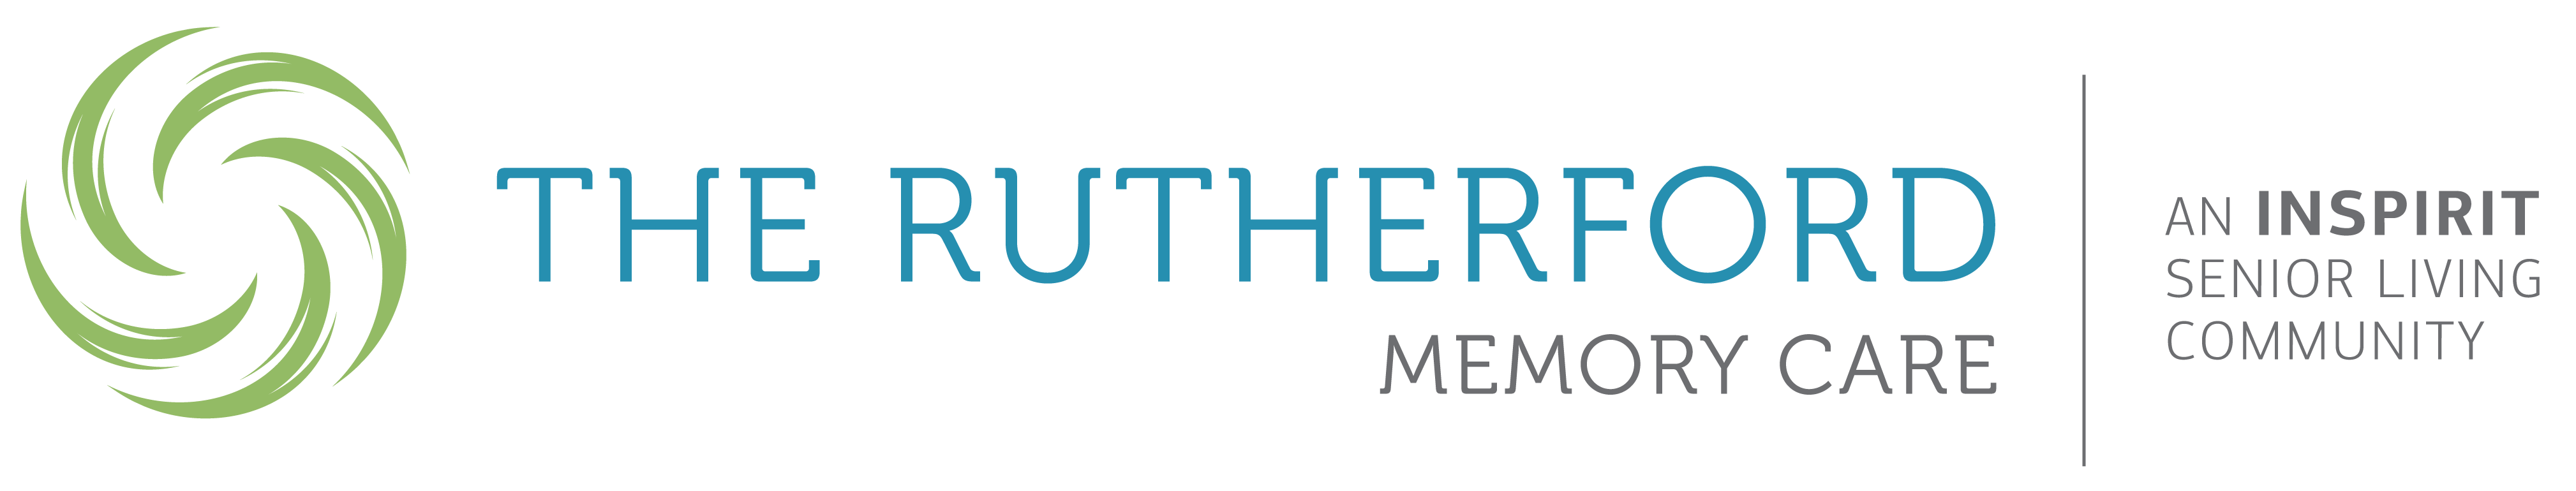 The Rutherford Memory Care logo